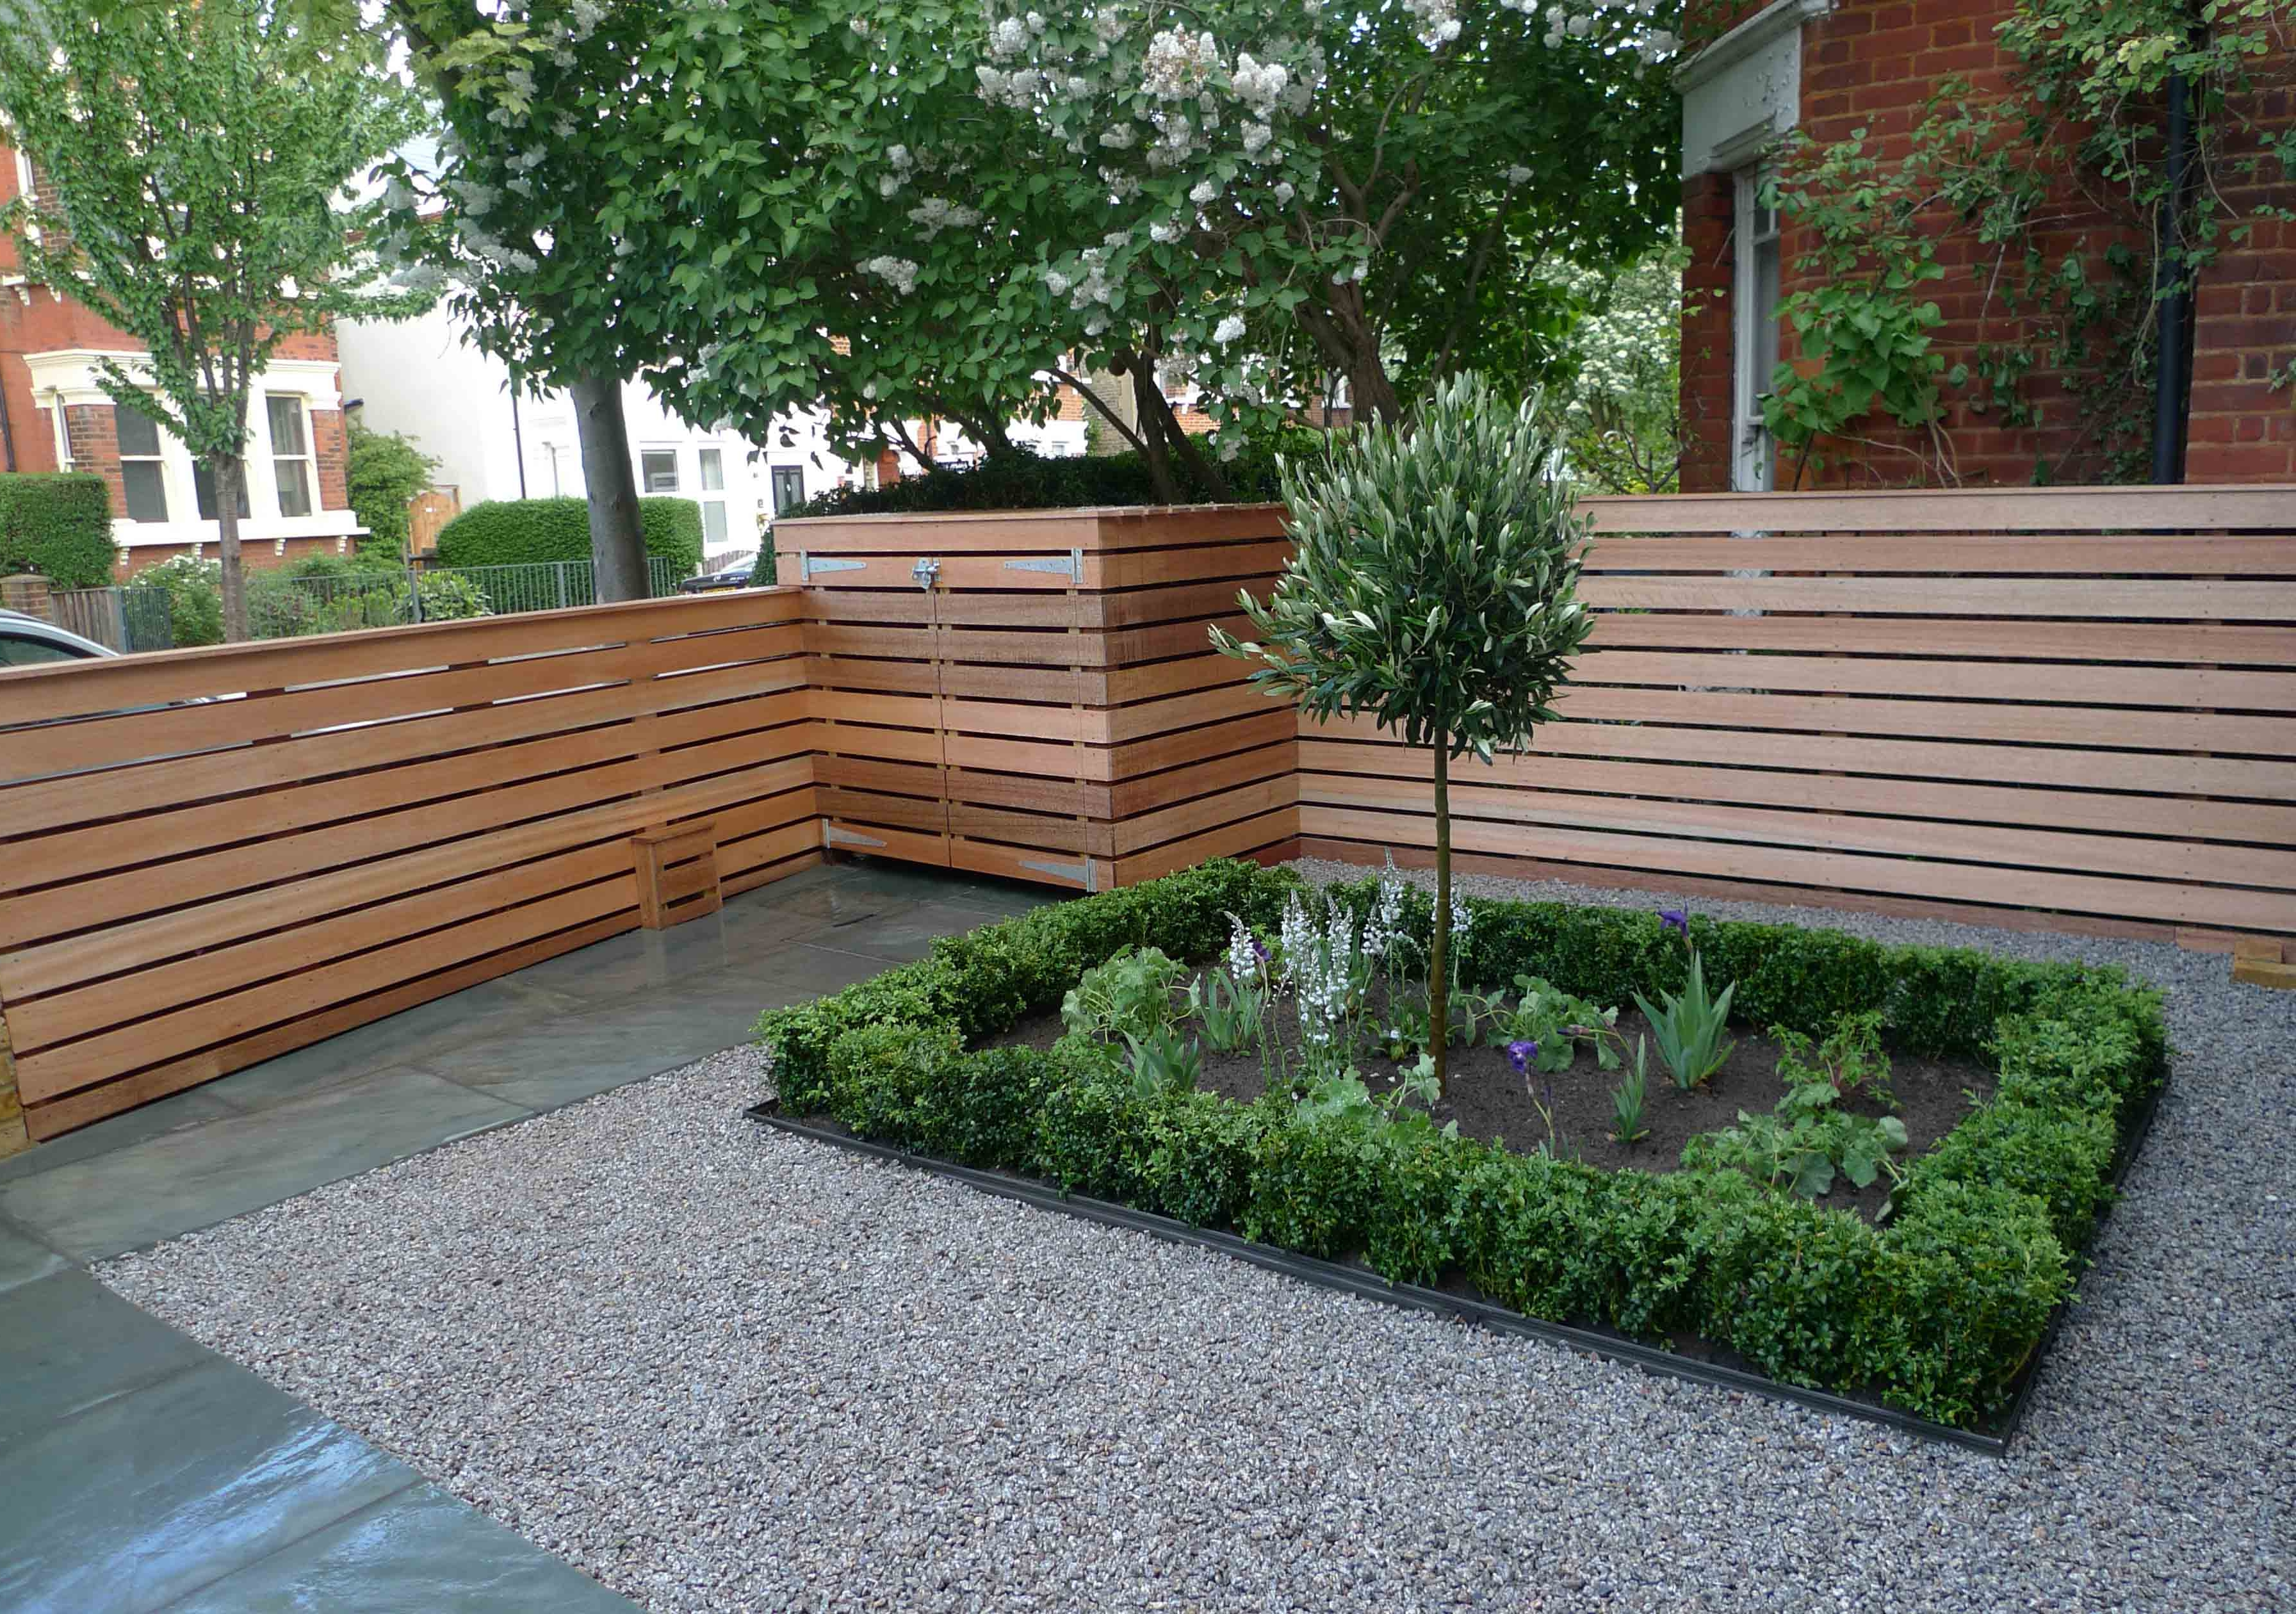 garden fencing ideas front garden fence ideas uk org design home and decorating in contemporary FTNPAFO